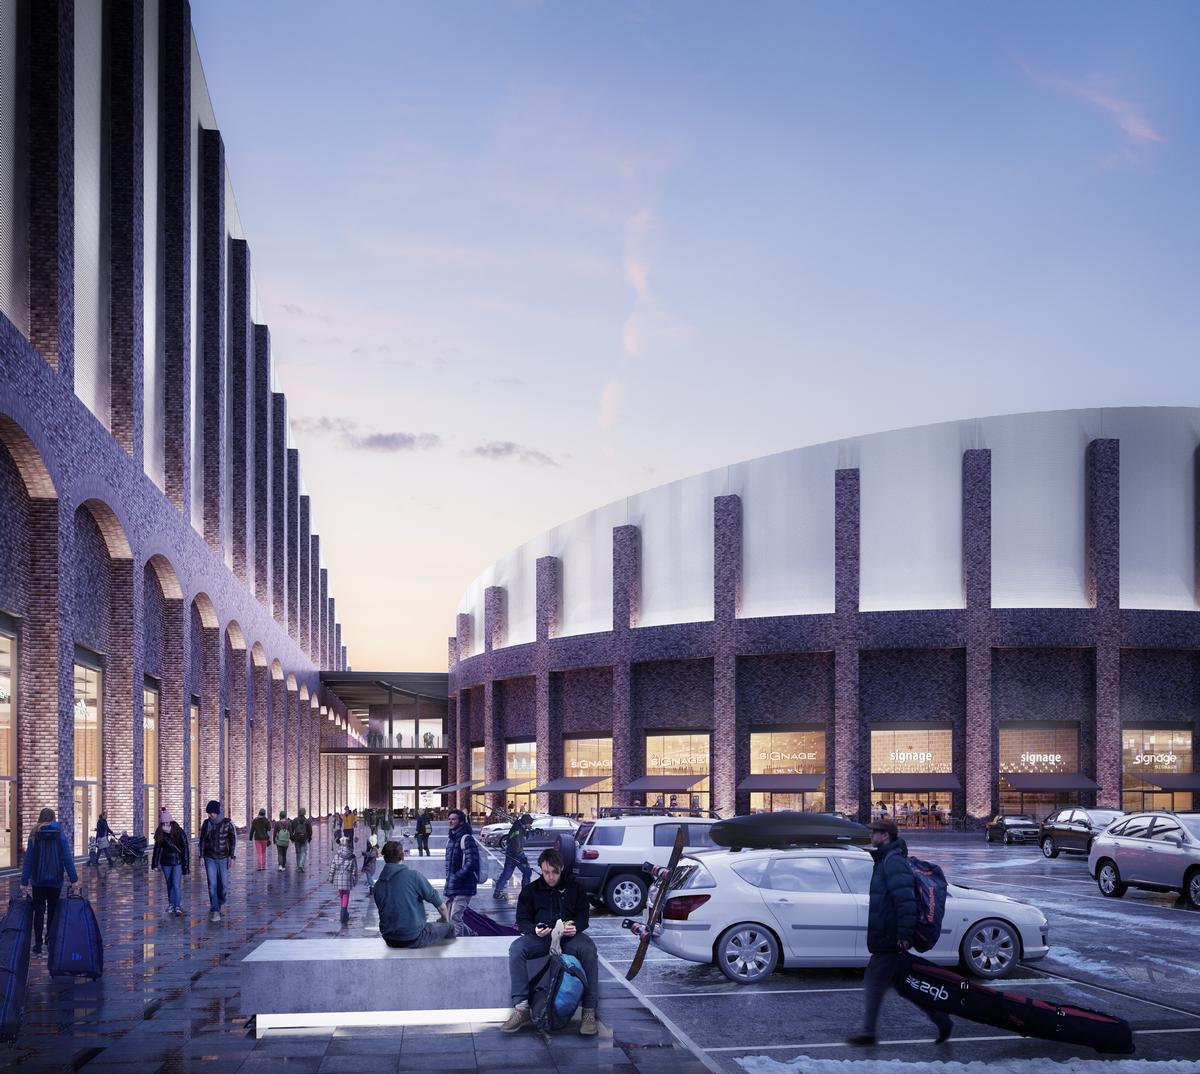 The centre will have two real-snow slopes; a twelve screen cinema with the largest IMAX screen in the UK; a bowling alley; an indoor trampolining centre; a hotel; shops and restaurants / FaulknerBrowns